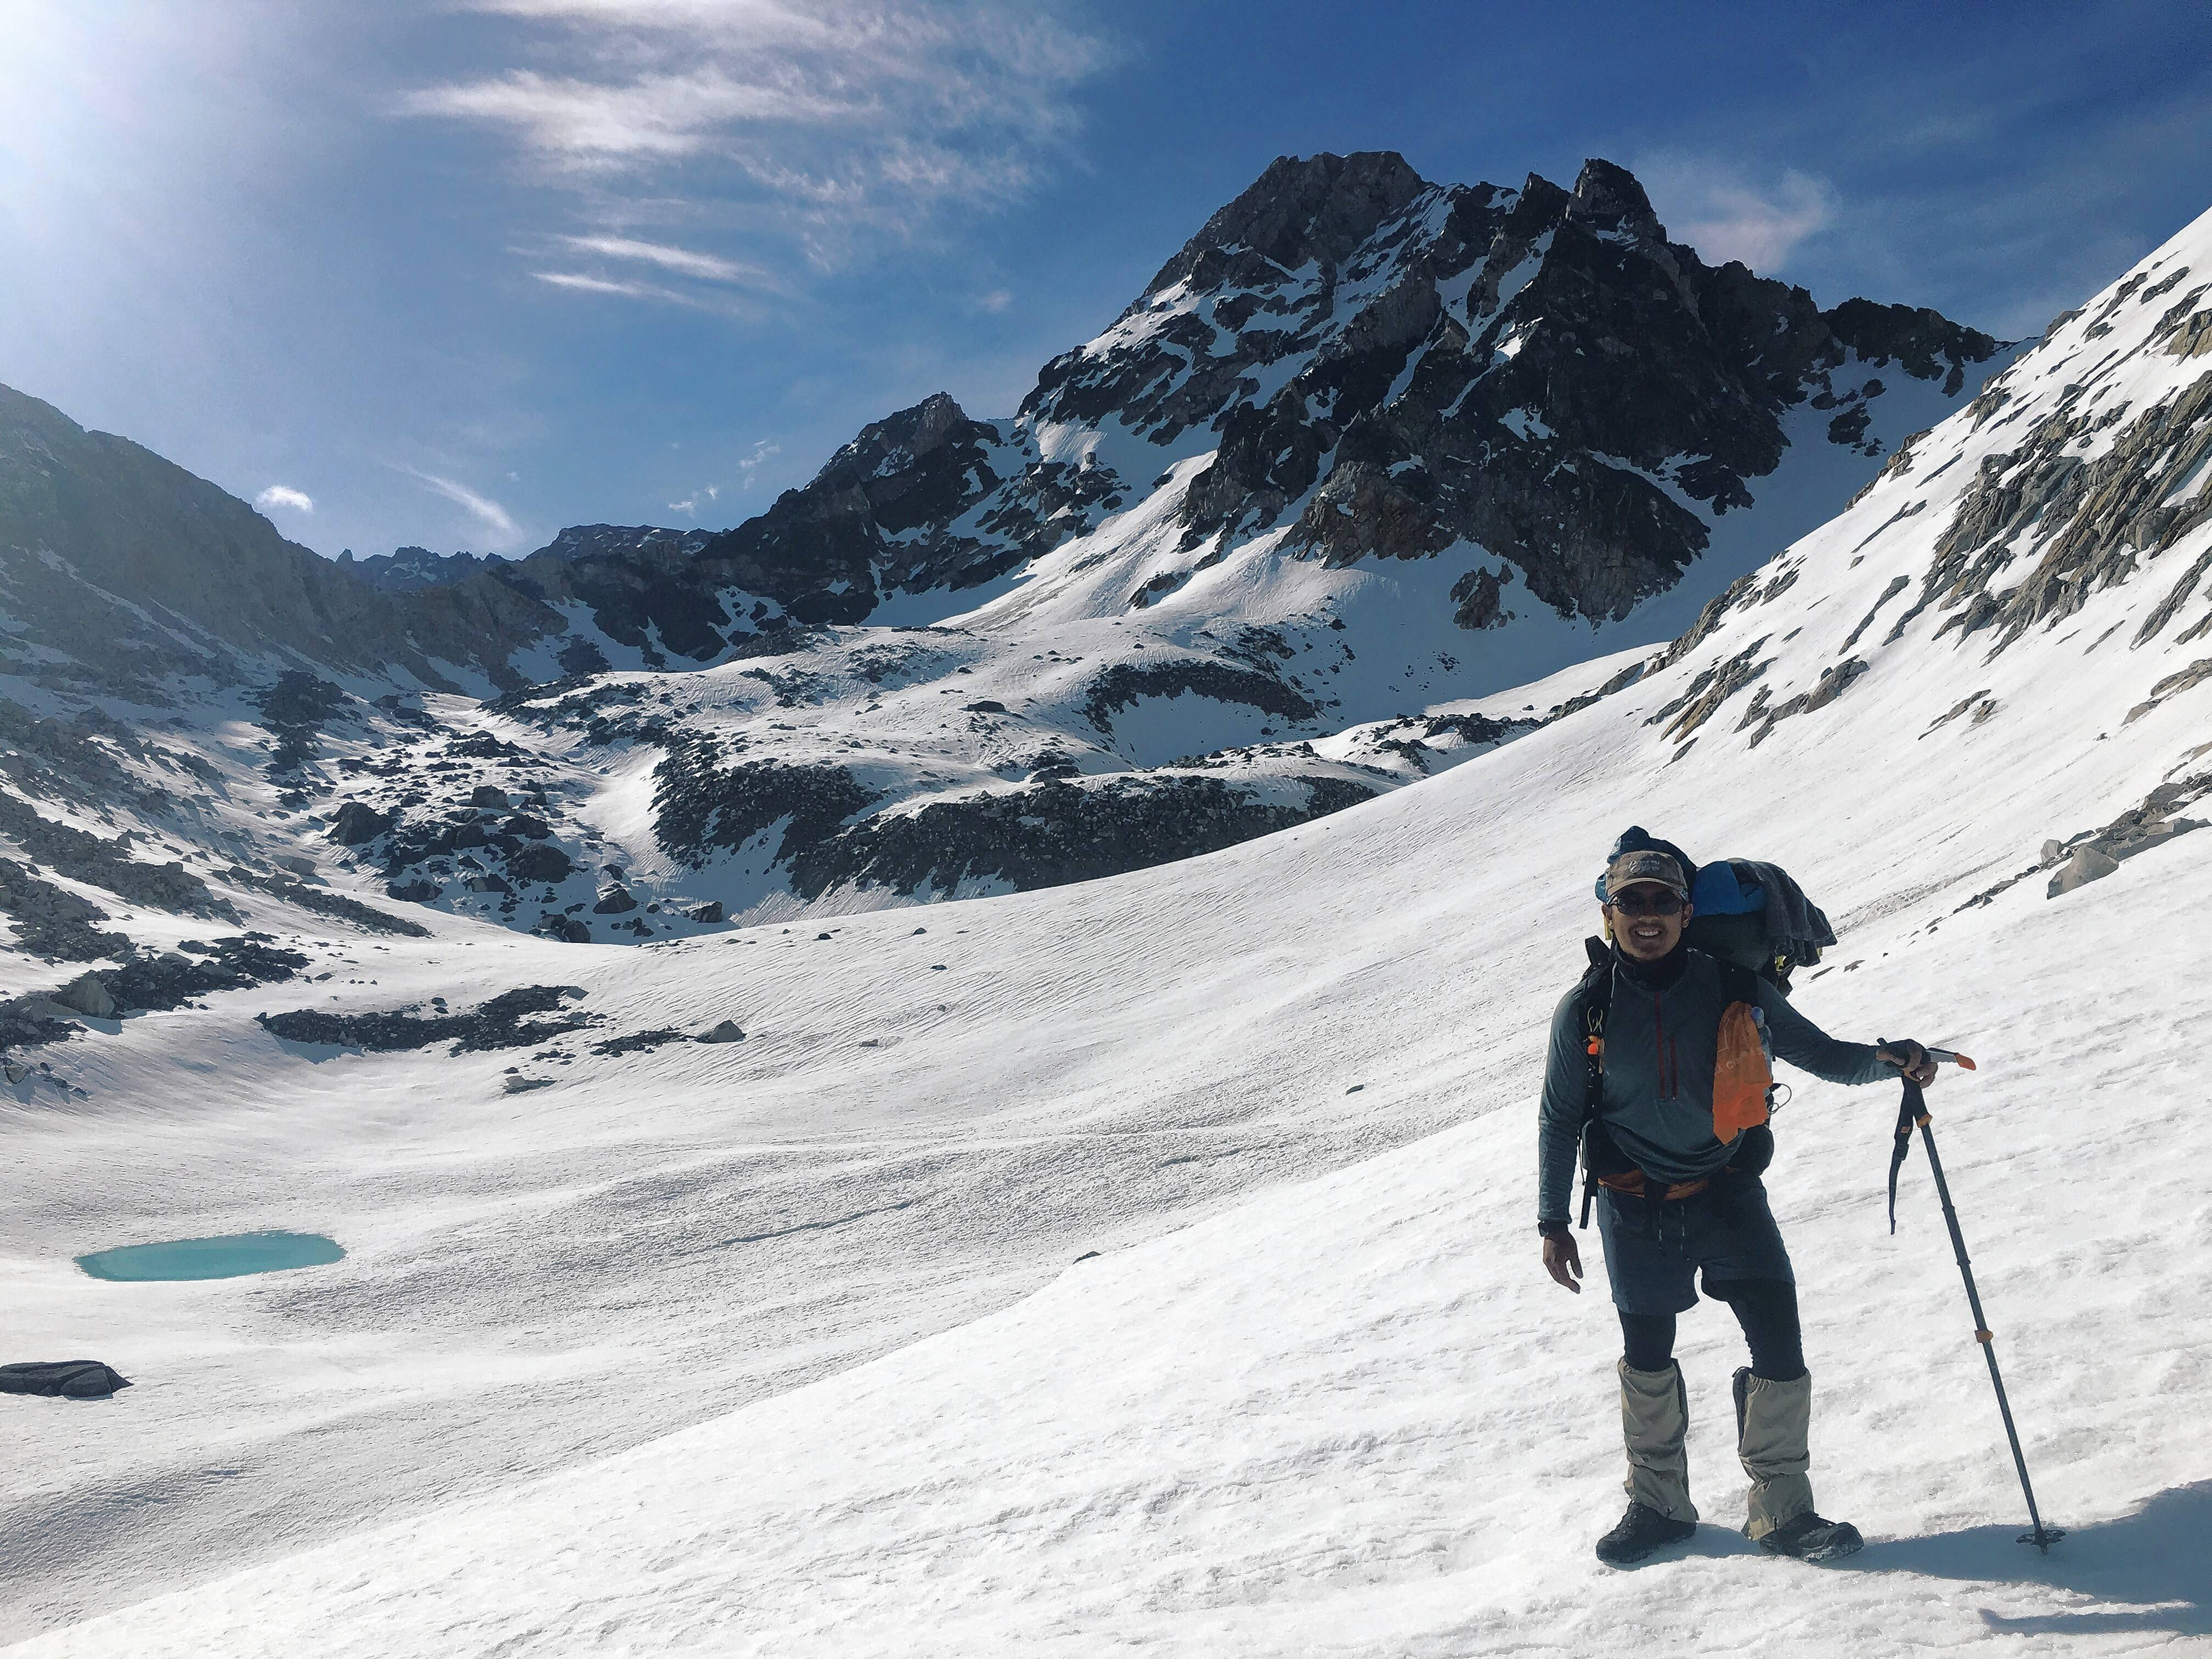 Eric Montgomery, who grew up in Lisle, embarked on a four-month hike of the Pacific Crest Trail this spring and summer.